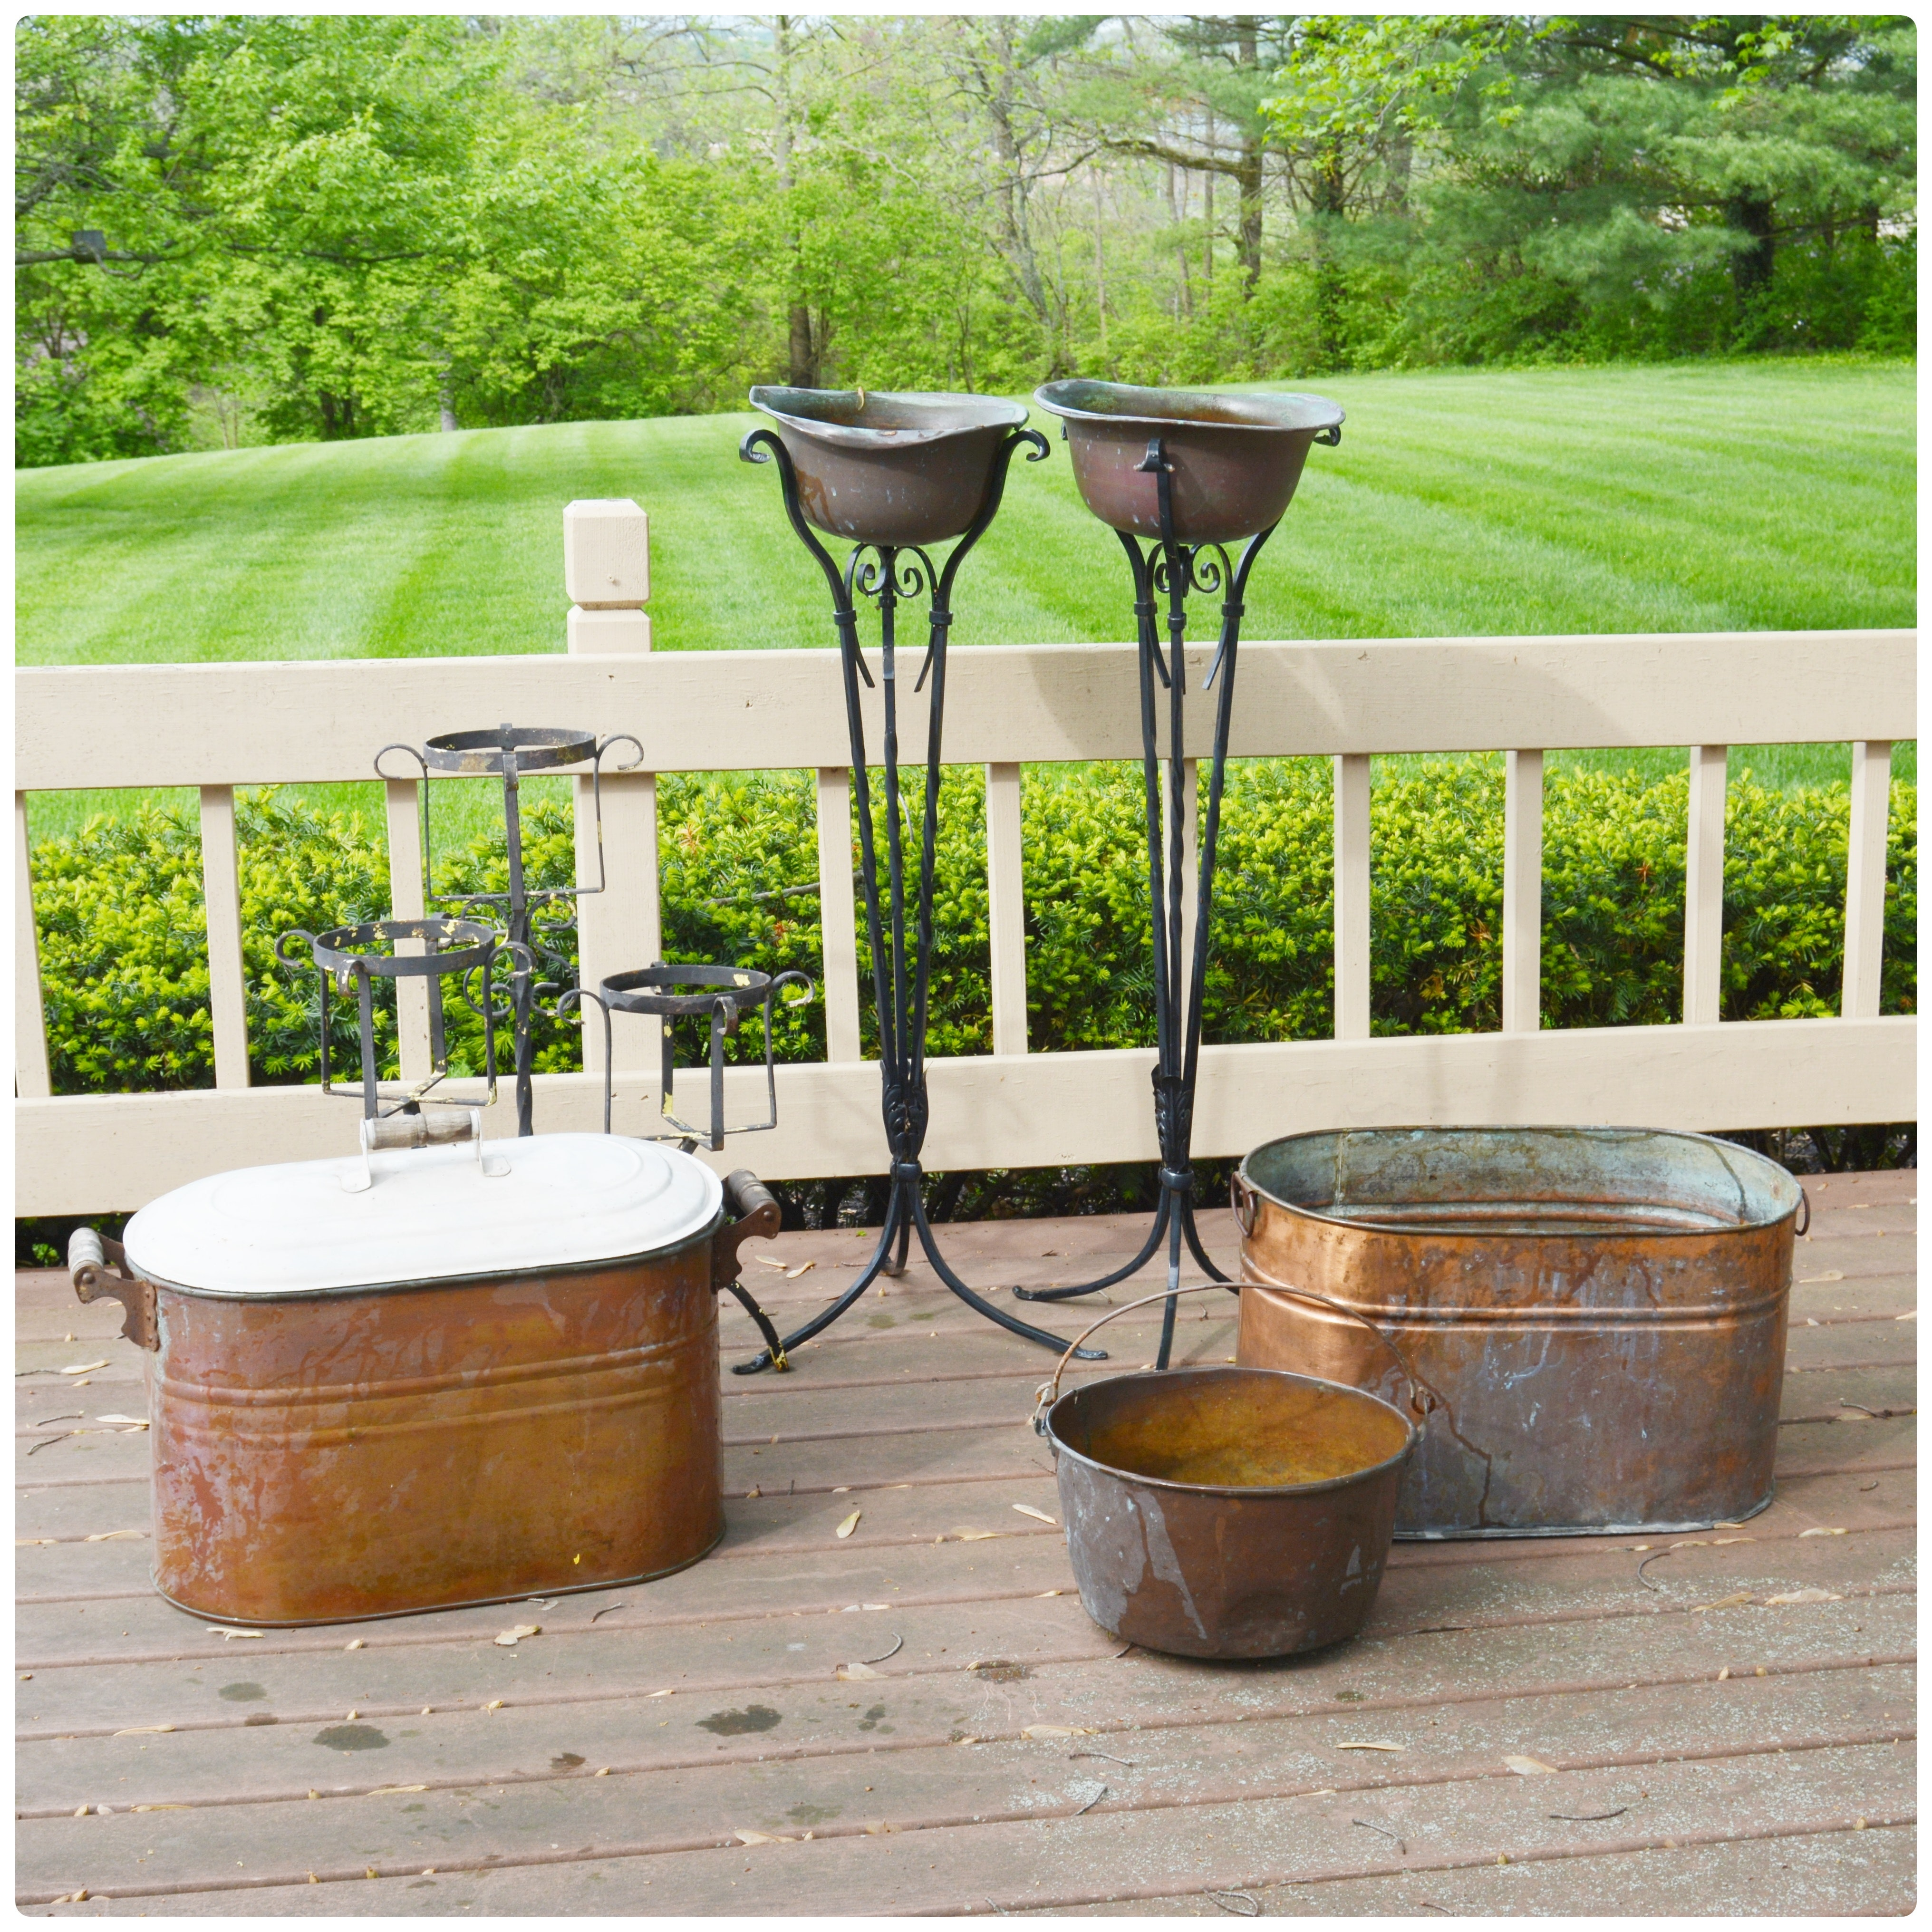 Outdoor Patio Copper Bowl Planters, Copper Wash Tubs, and Pot Holder